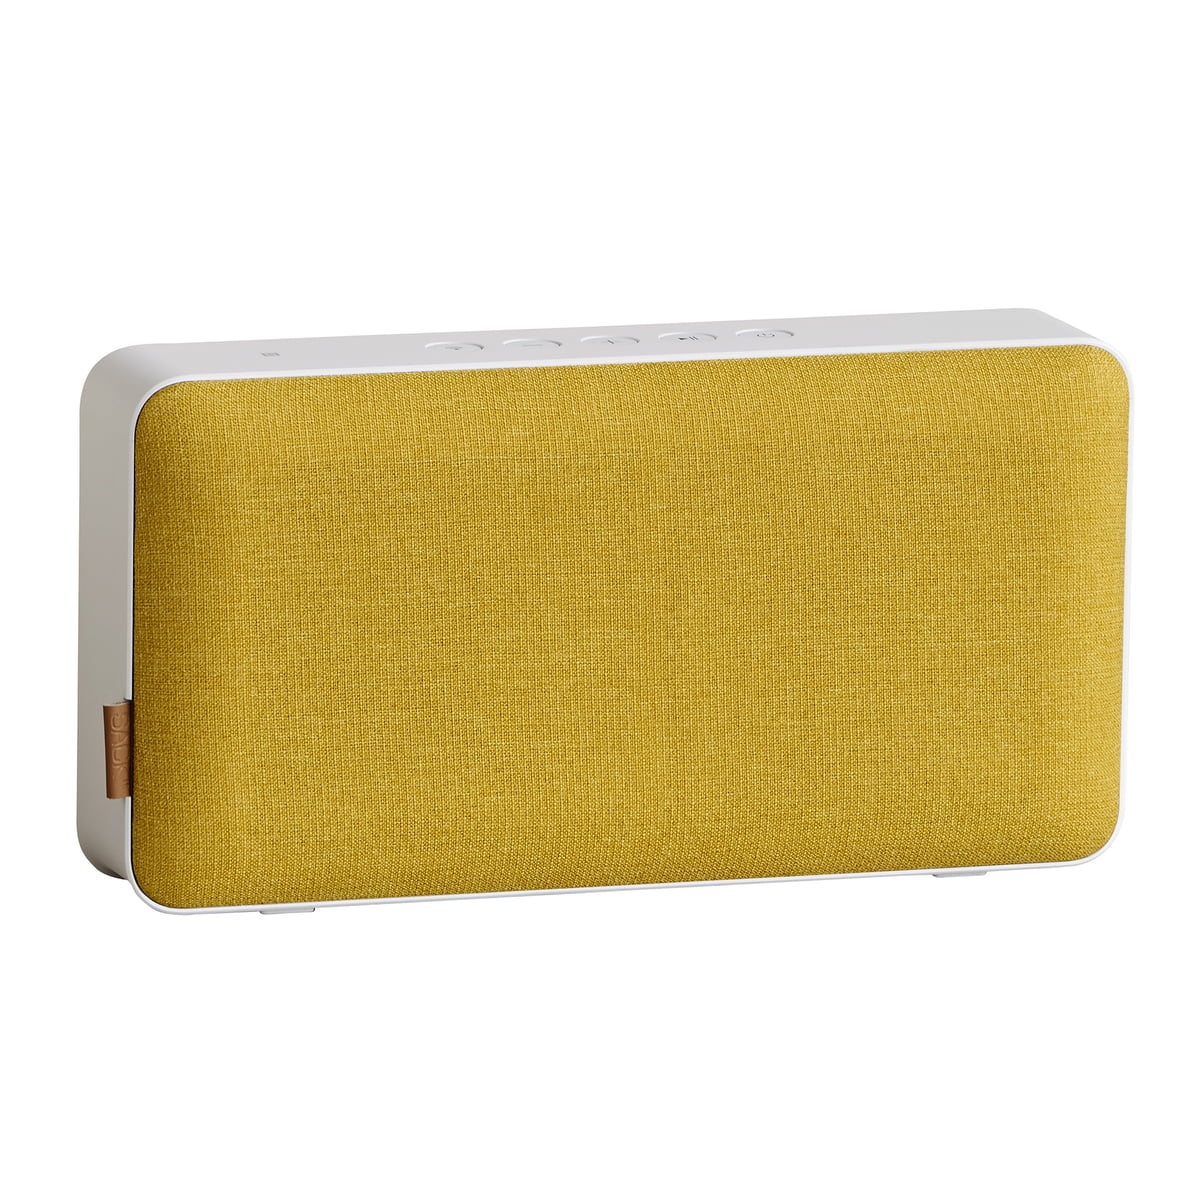 Outstanding Decorative Wall Speaker Covers Ensign - Wall Art ...